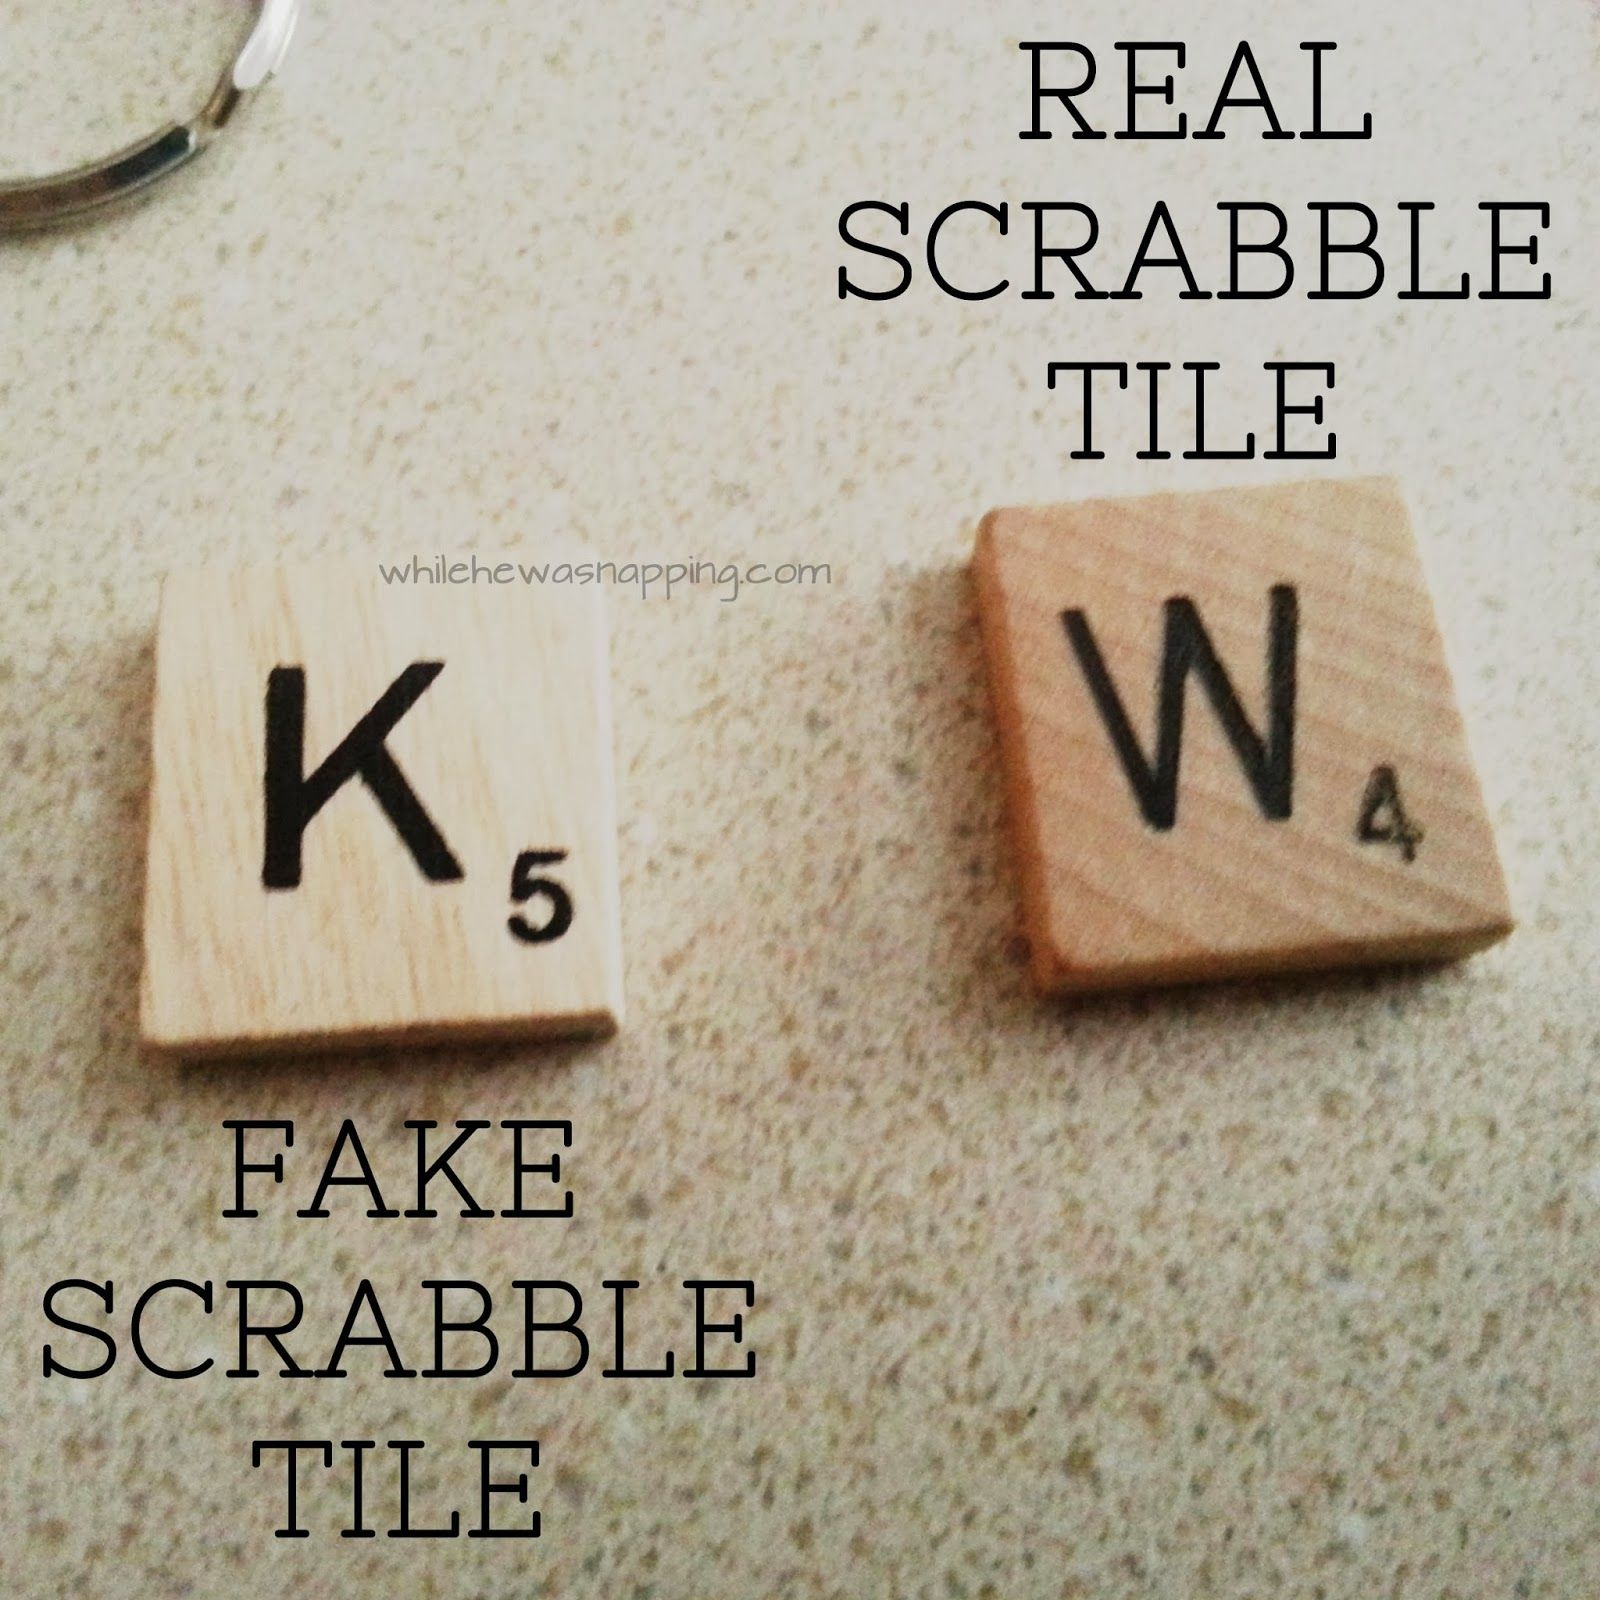 Wood burned scrabble tile pendants i want to make this in large wood burned scrabble tile pendants i want to make this in large and put it aloadofball Image collections